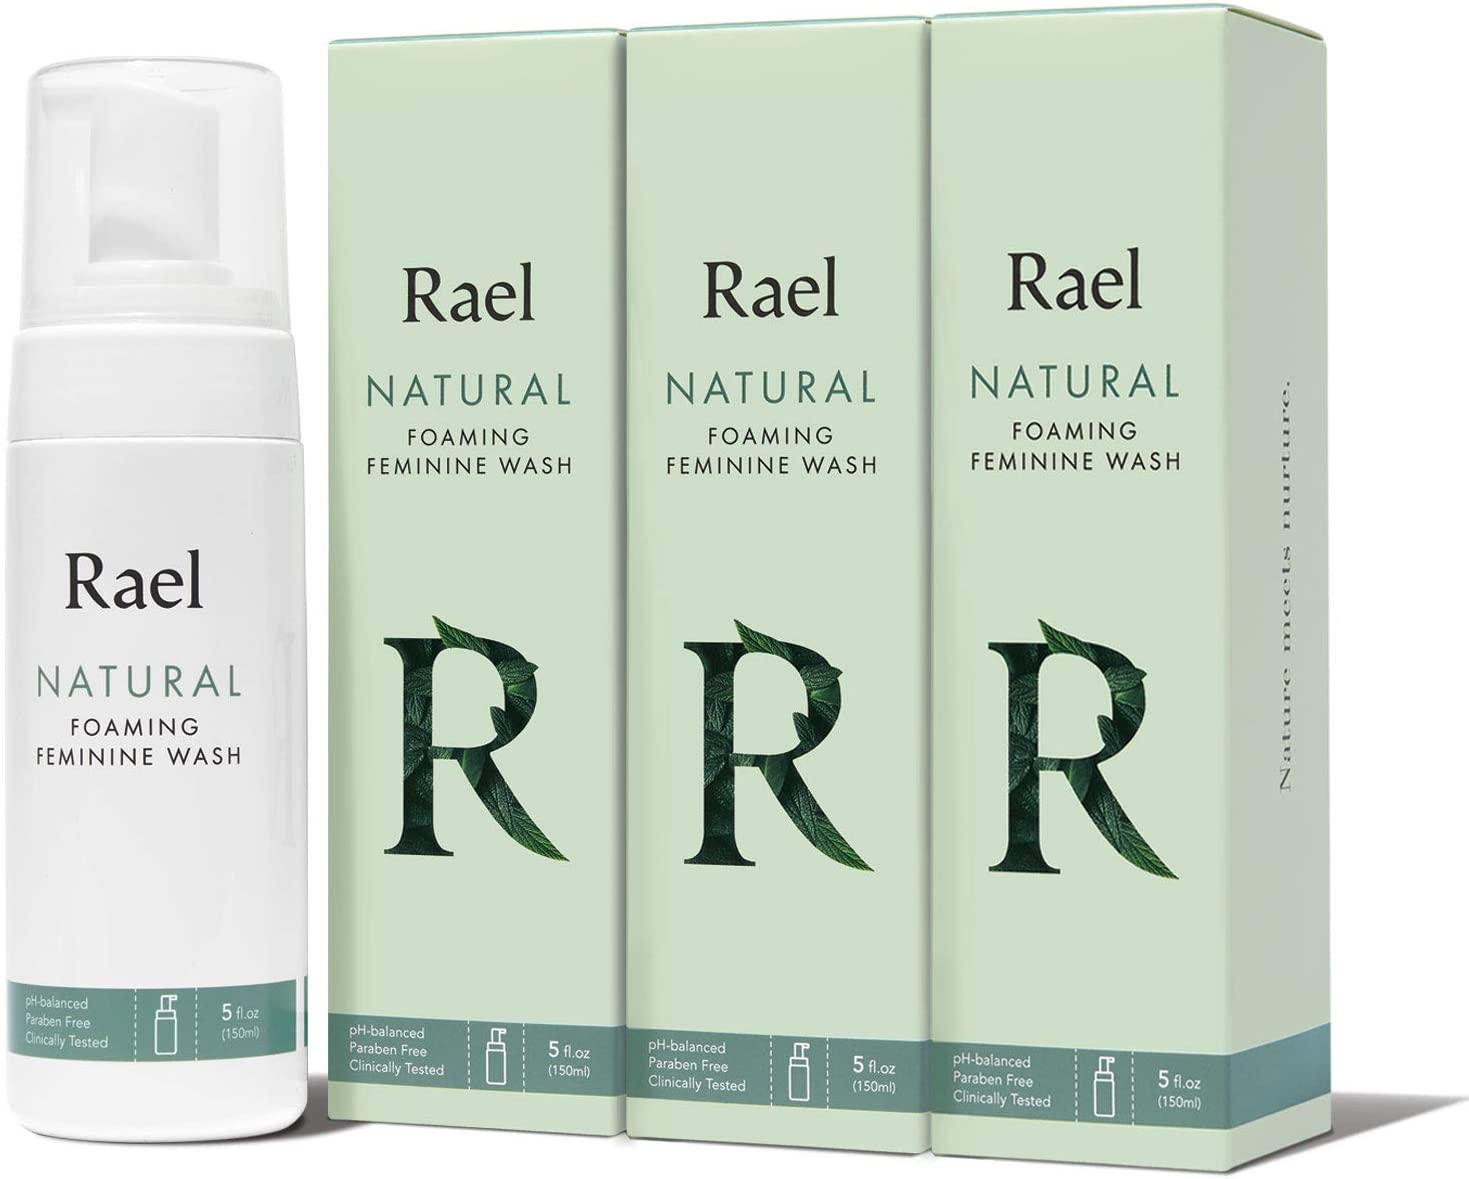 Rael Natural Feminine Cleansing Wash - Gentle Foaming Intimate Wash, pH-Balanced, Sensitive Skin, Scent Free, Daily Cleansing Wash, Natural Ingredients (5oz, 3Pack): Health & Personal Care